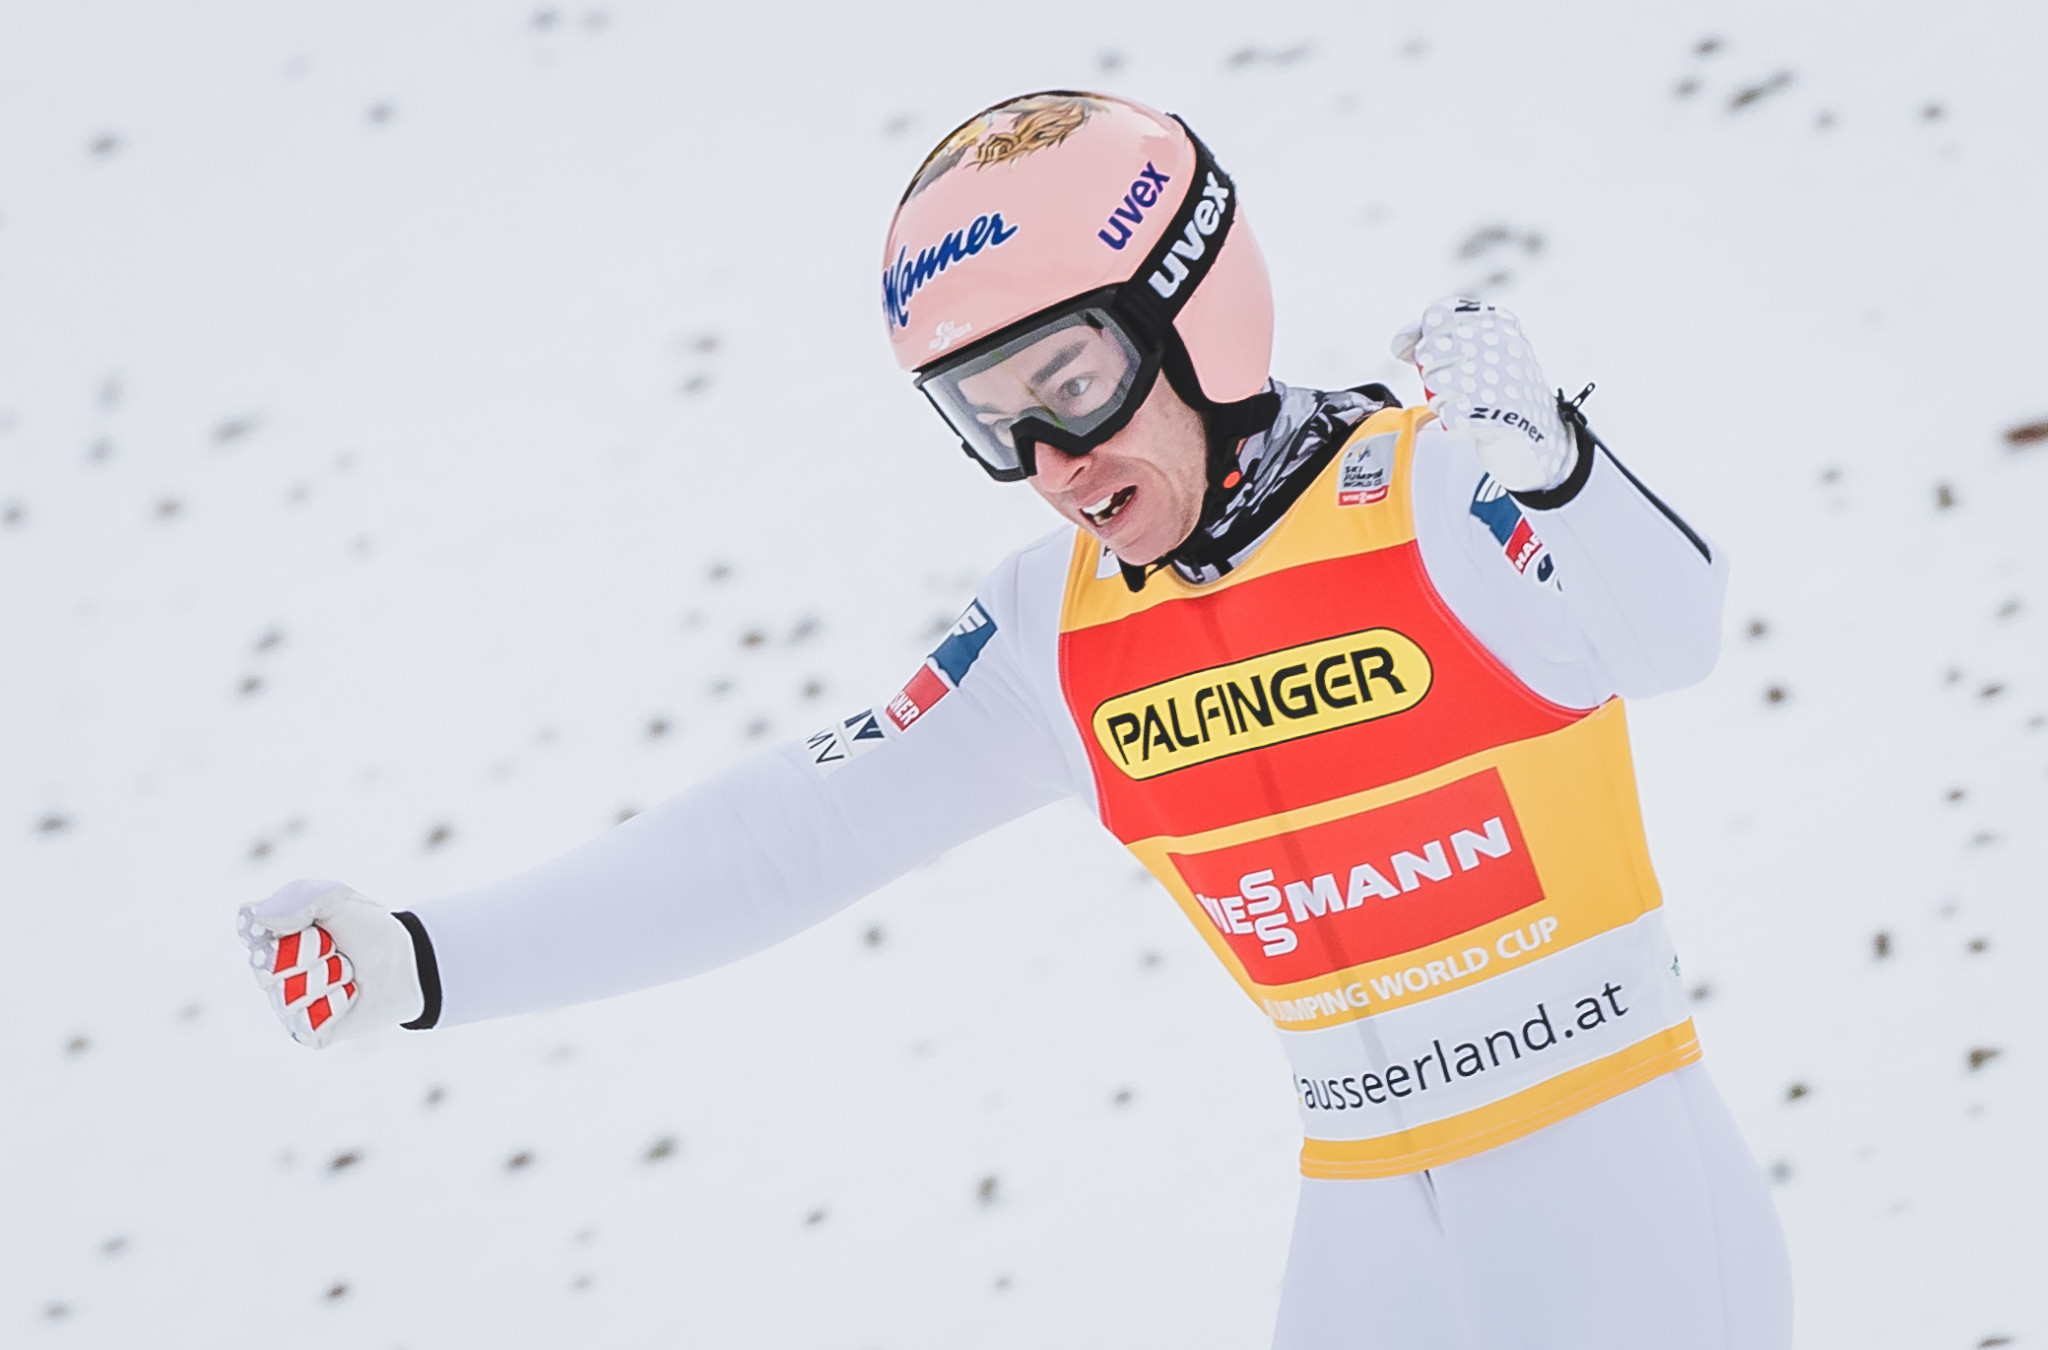 Home hero Kraft extends FIS Ski Jumping World Cup lead with win in Austria